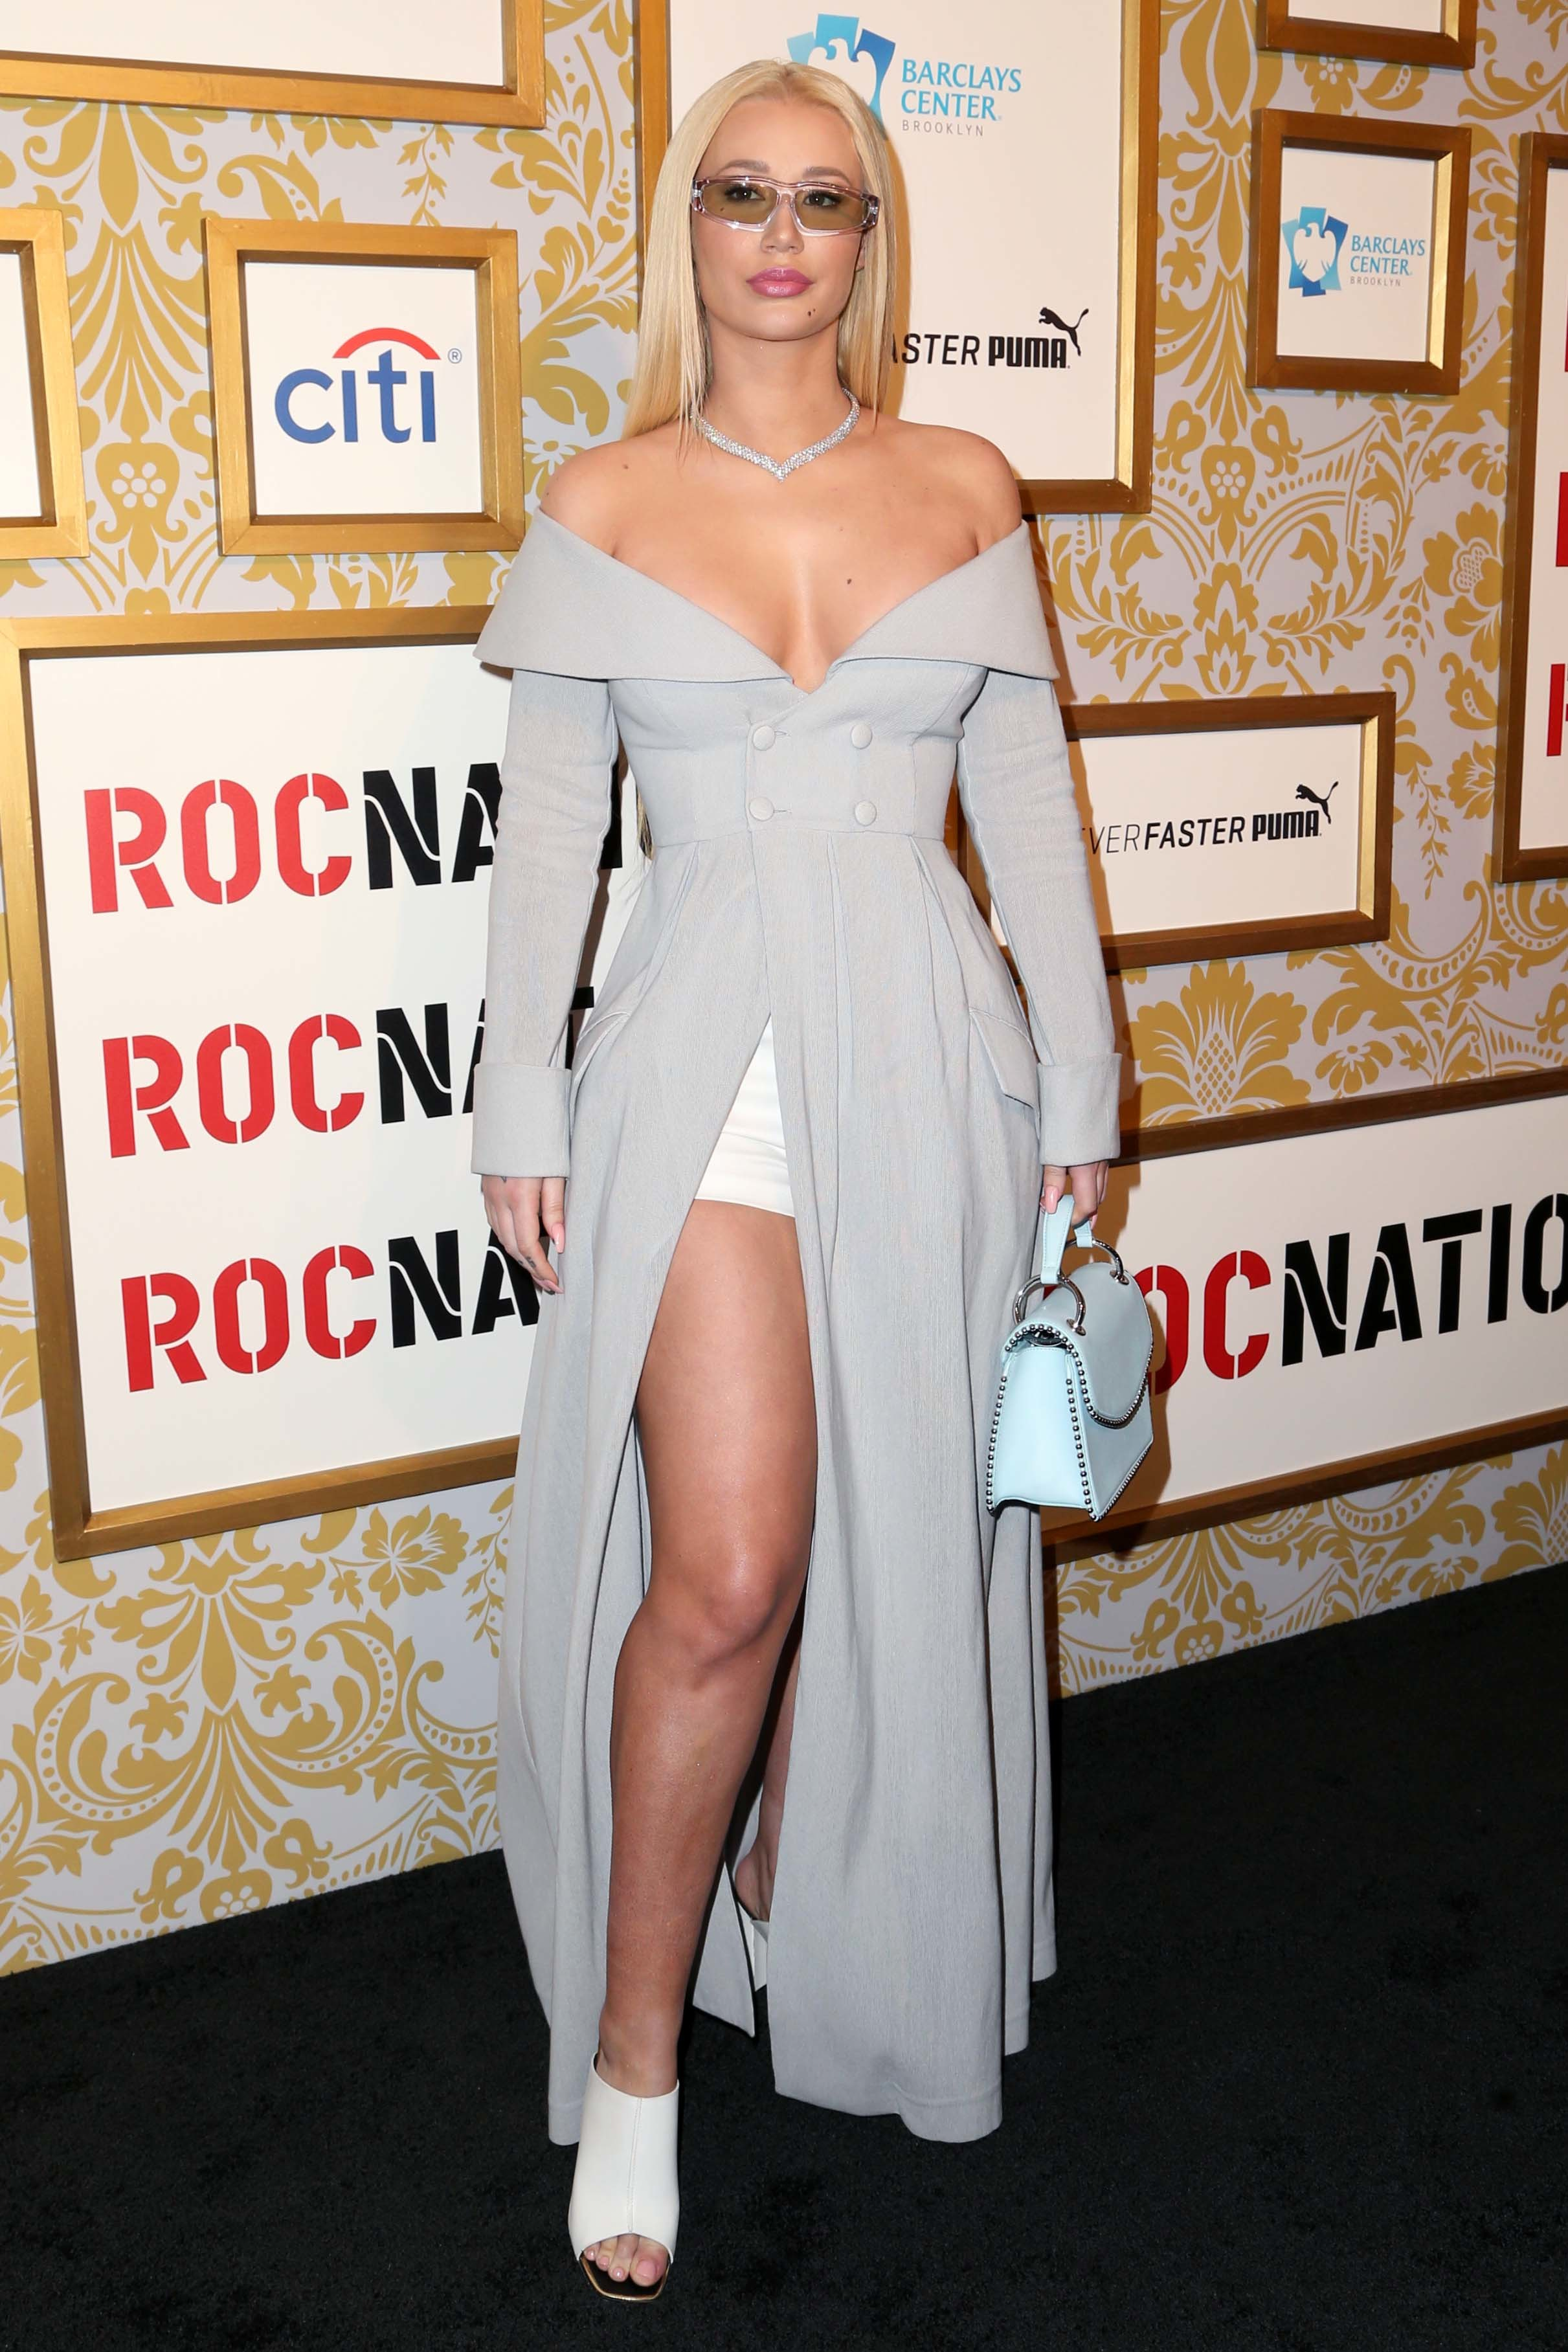 Iggy Azalea attends Roc Nation's annual pre Grammys brunch in New York City on Jan. 27, 2018.